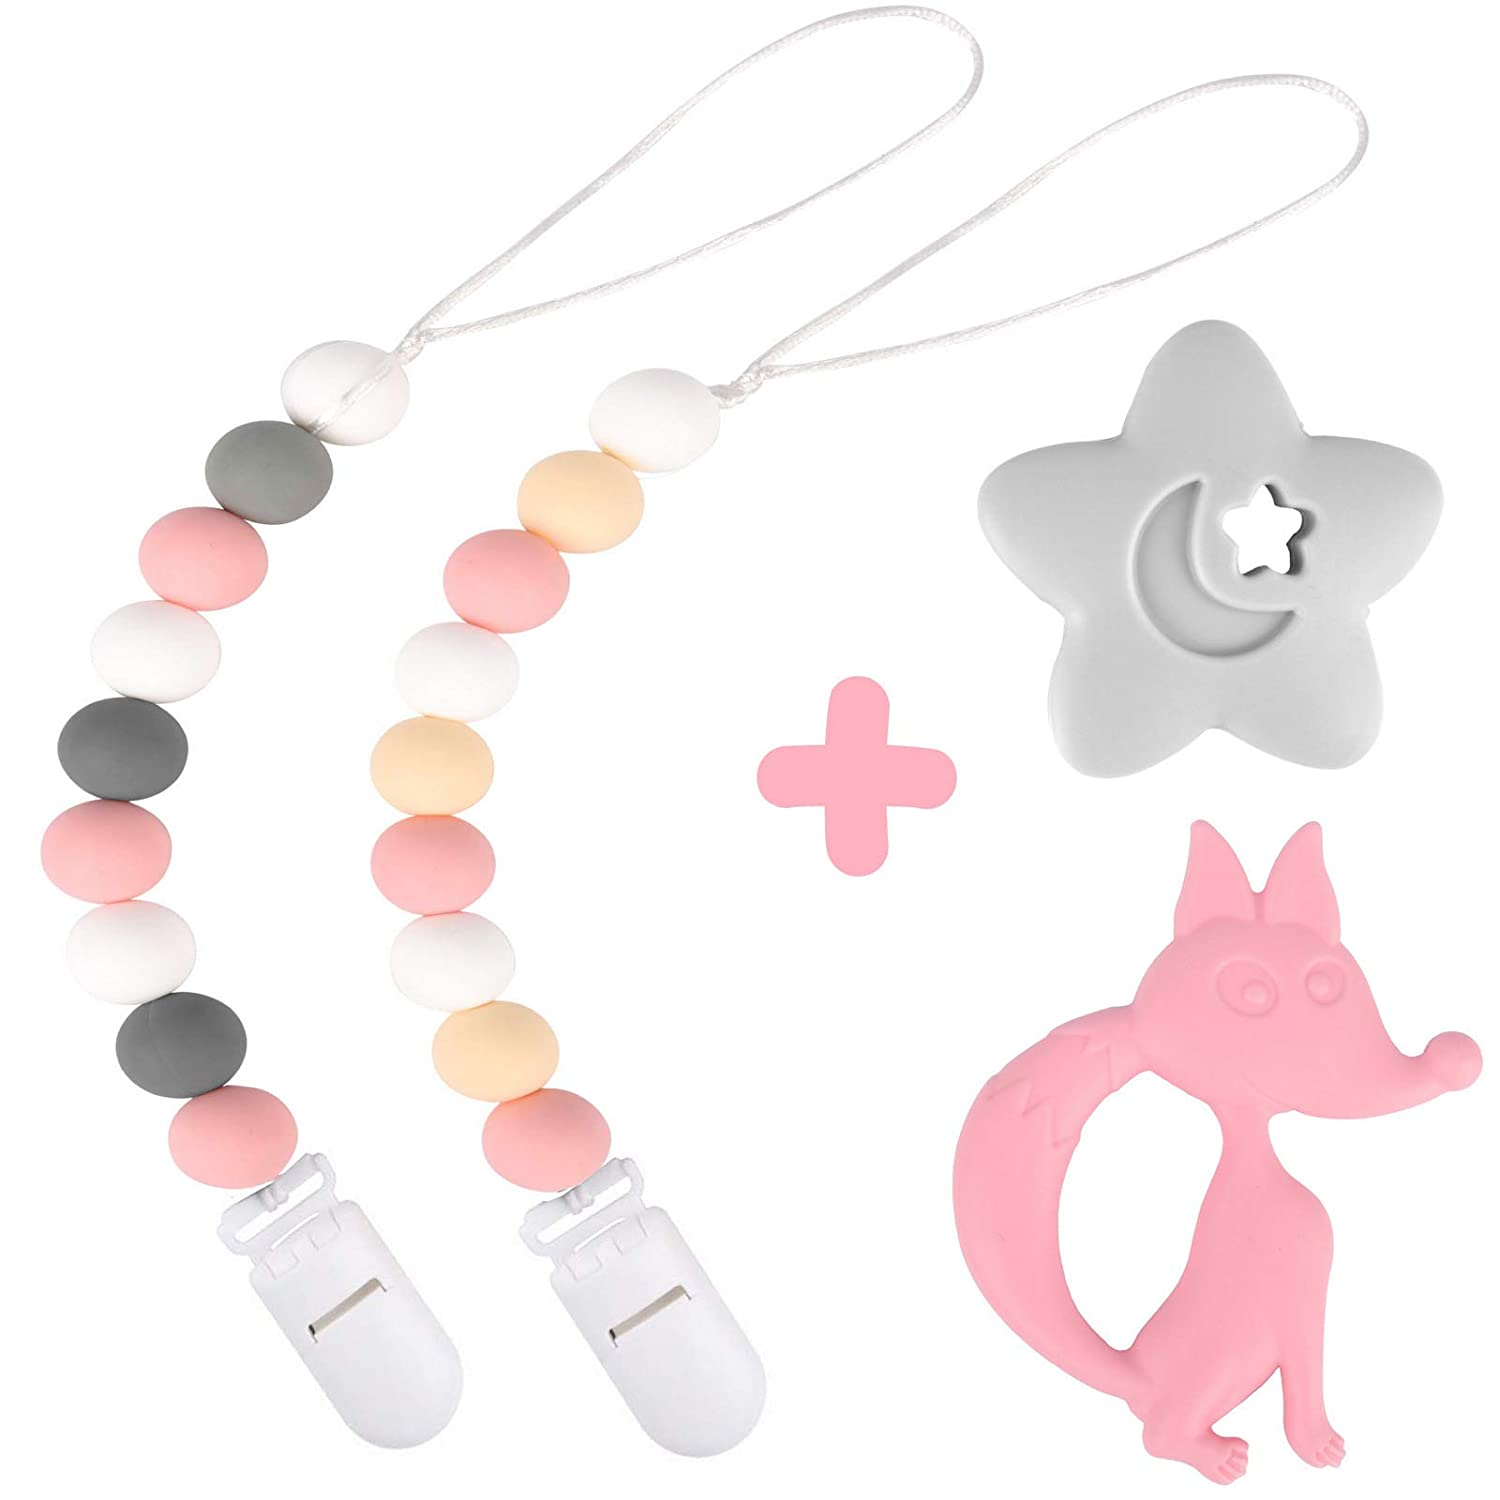 Teething Toy or Soothie Baby Shower Gift Set Teething Toy Silicone Pacifier Clip by Dodo Babies Pack of 2 Premium/Teething Bead for Girls Modern Designs Universal Holder Leash for Pacifiers